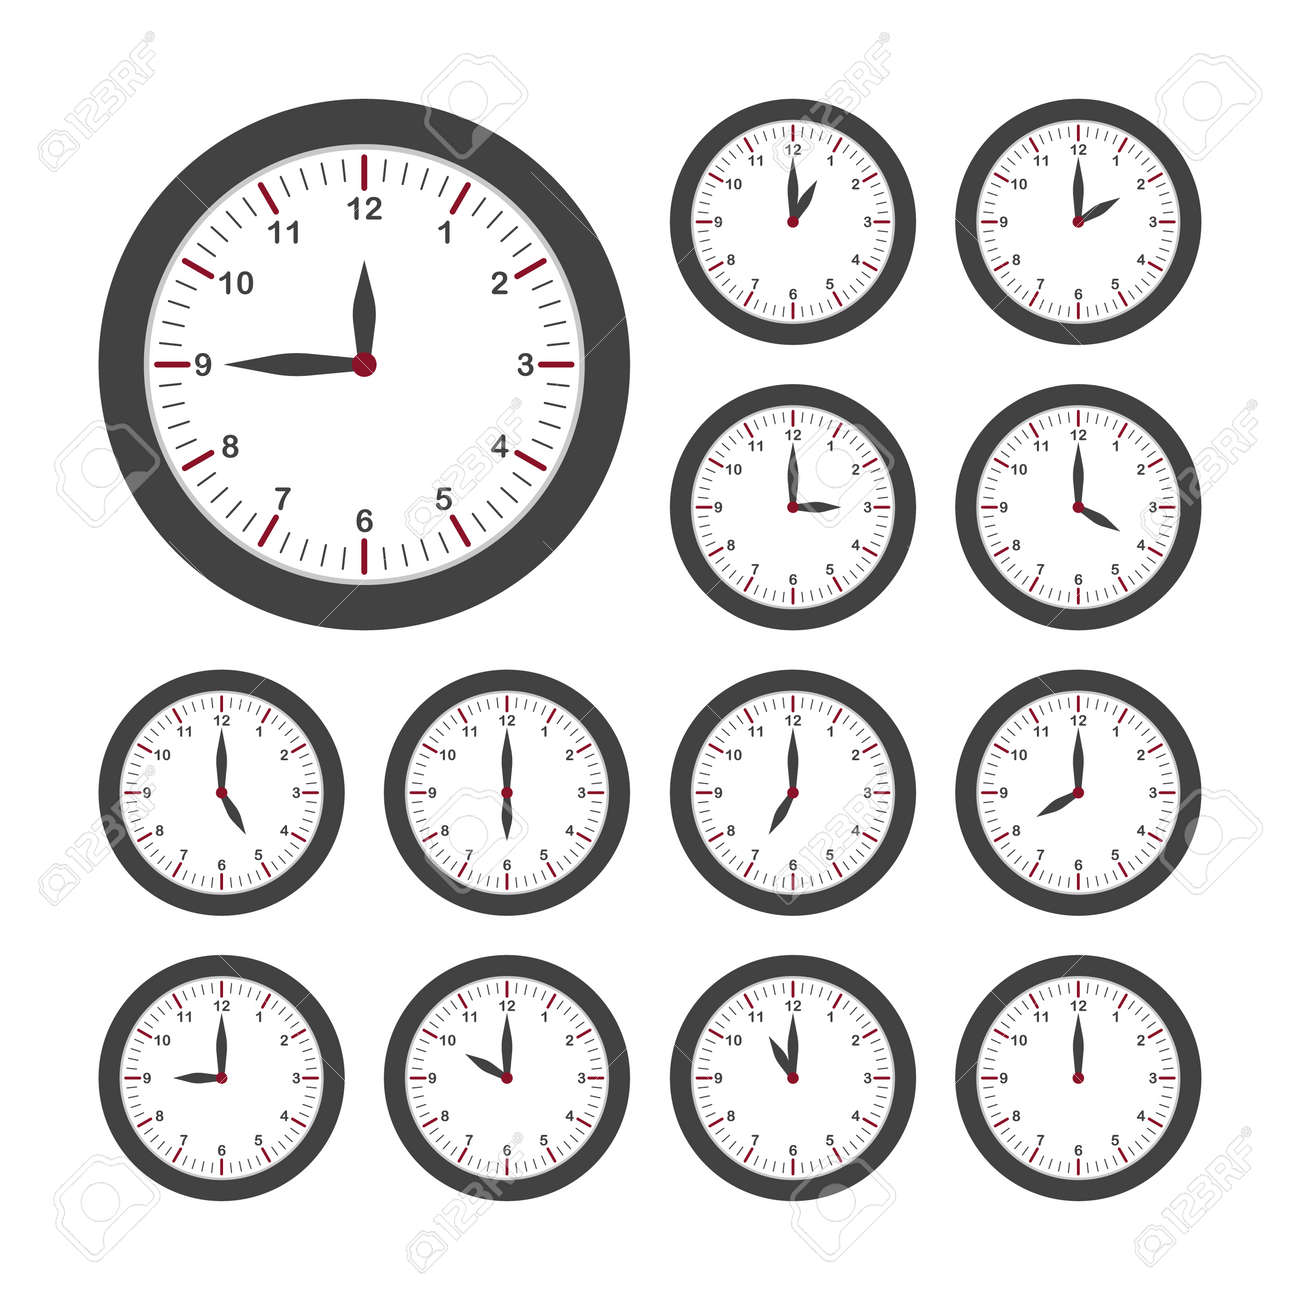 Set of round clocks for every hour. Analog clock with circle shape, time and minutes. Vector - 159636894